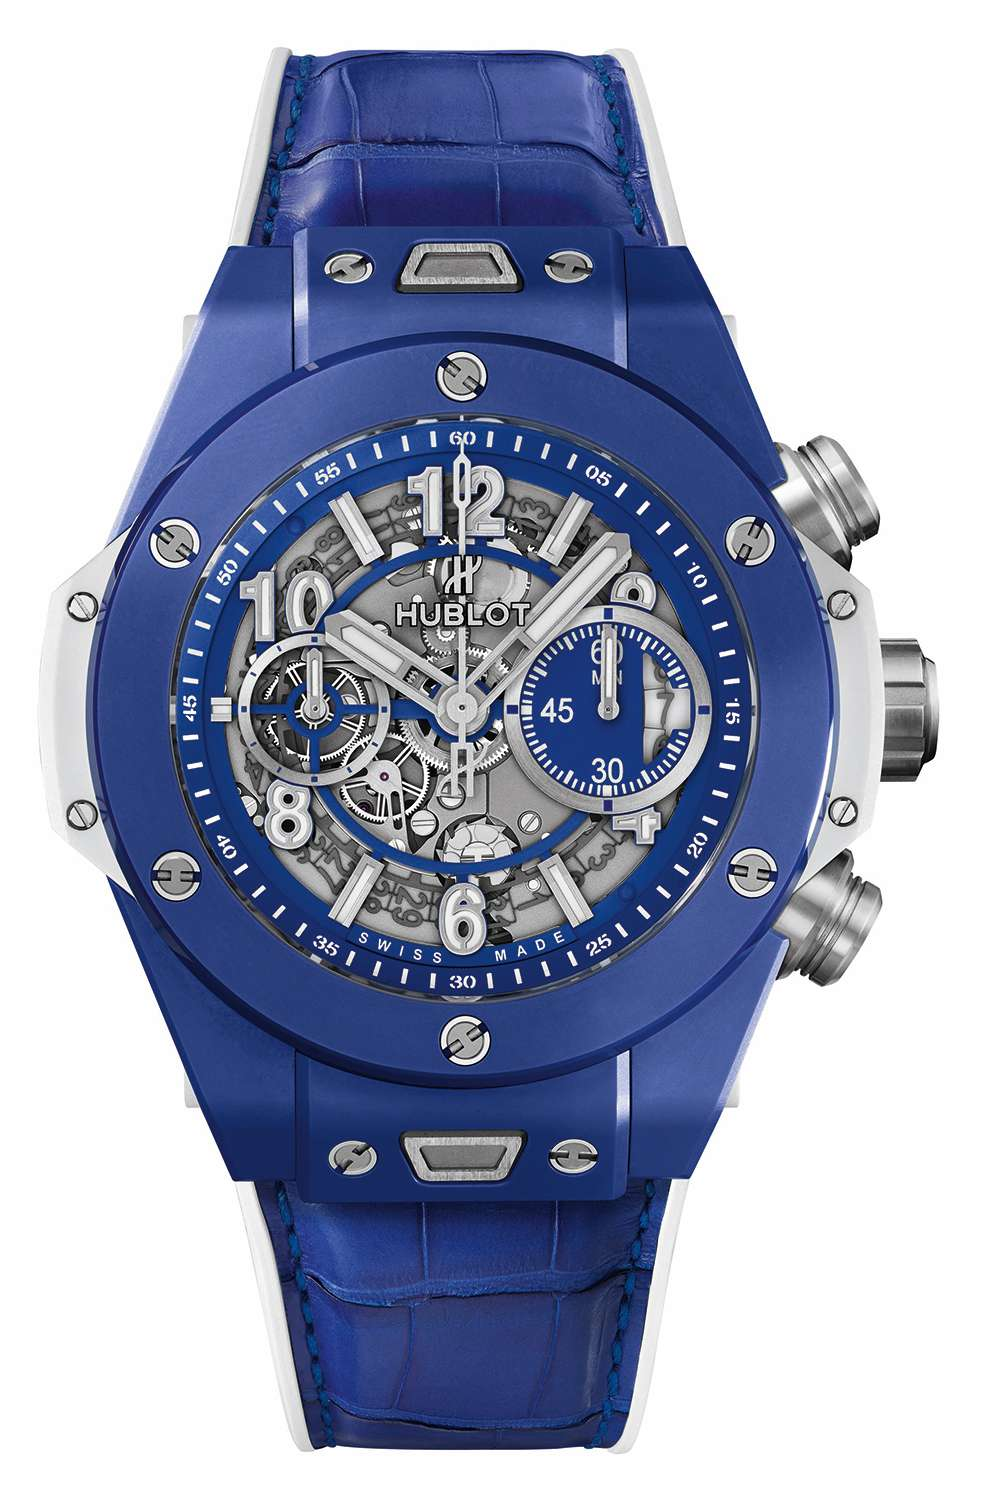 Hublot Big Bang Blue Time Transformed